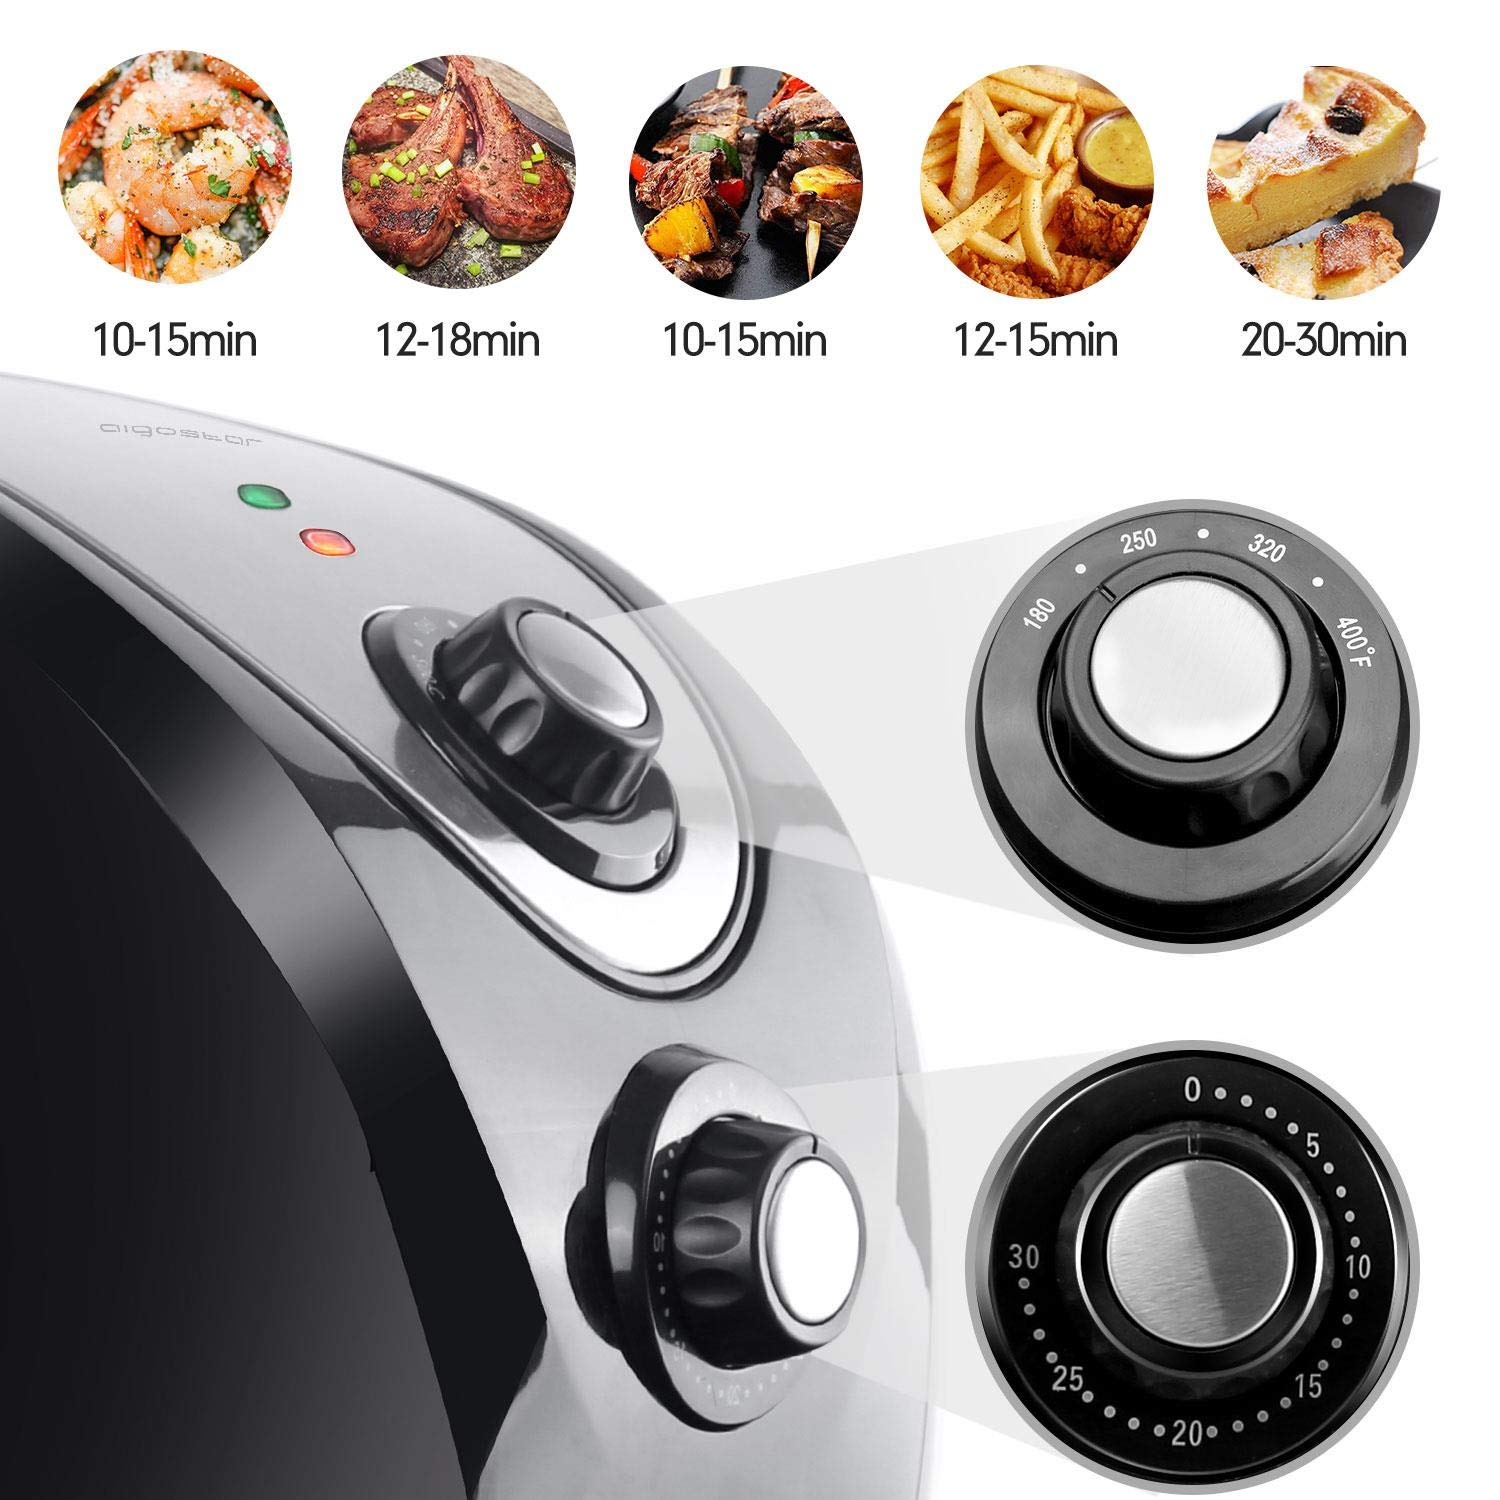 Aigostar Dragon Pro Air Fryer, 3.4Qt Electric Hot Air Fryers Oven Oilless Cooker with Detachable Non-stick Basket & Automatic Timer & Temperature Control for Fast Healthier Fried Food, 1400W by Aigostar (Image #2)